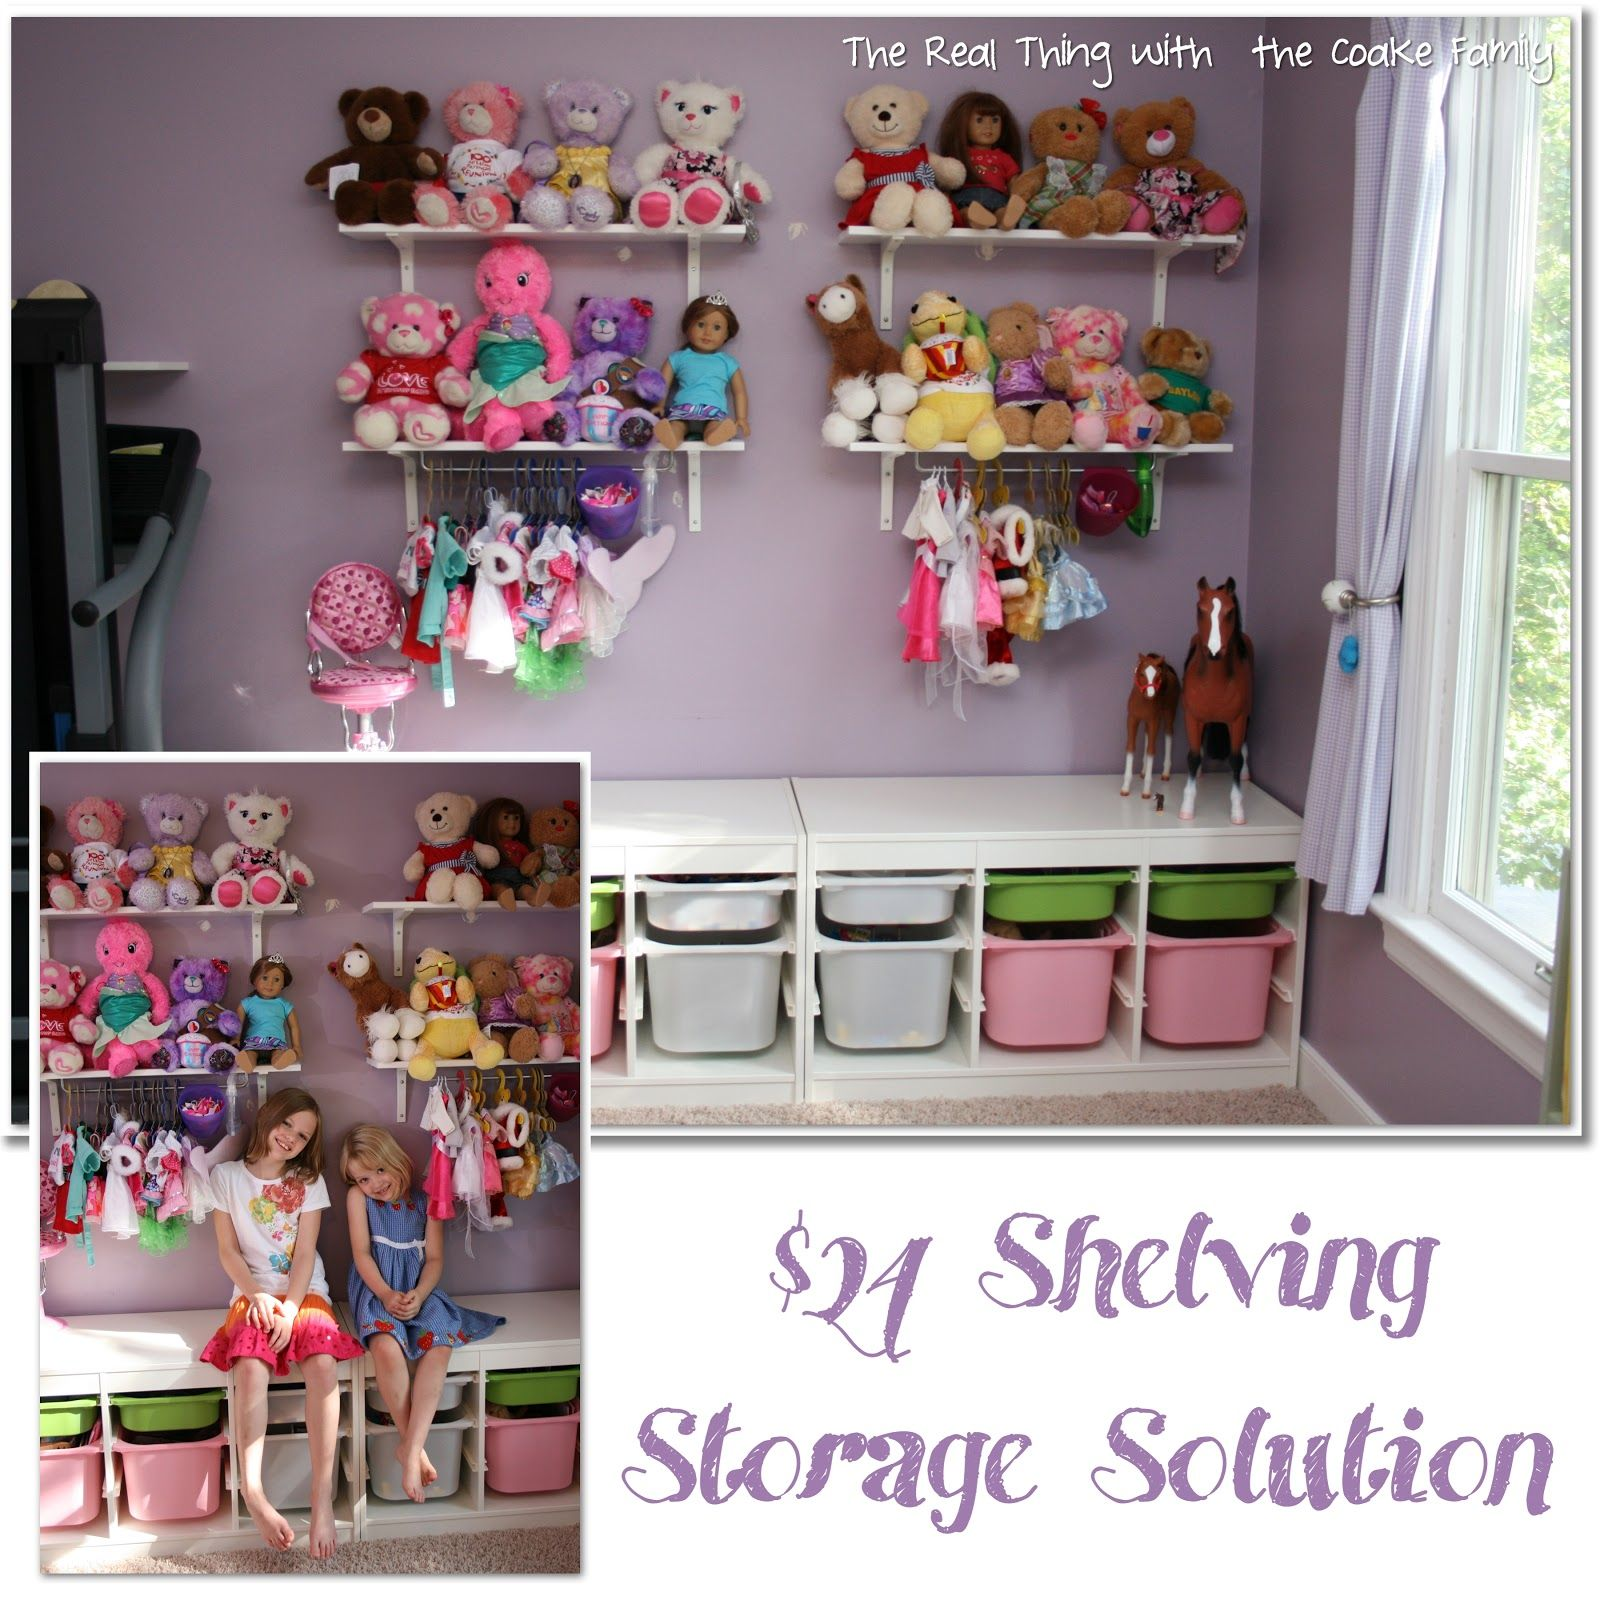 10 Types Of Toy Organizers For Kids Bedrooms And Playrooms: Storage Solutions: $24 Shelving And Storage For Kid's Toys